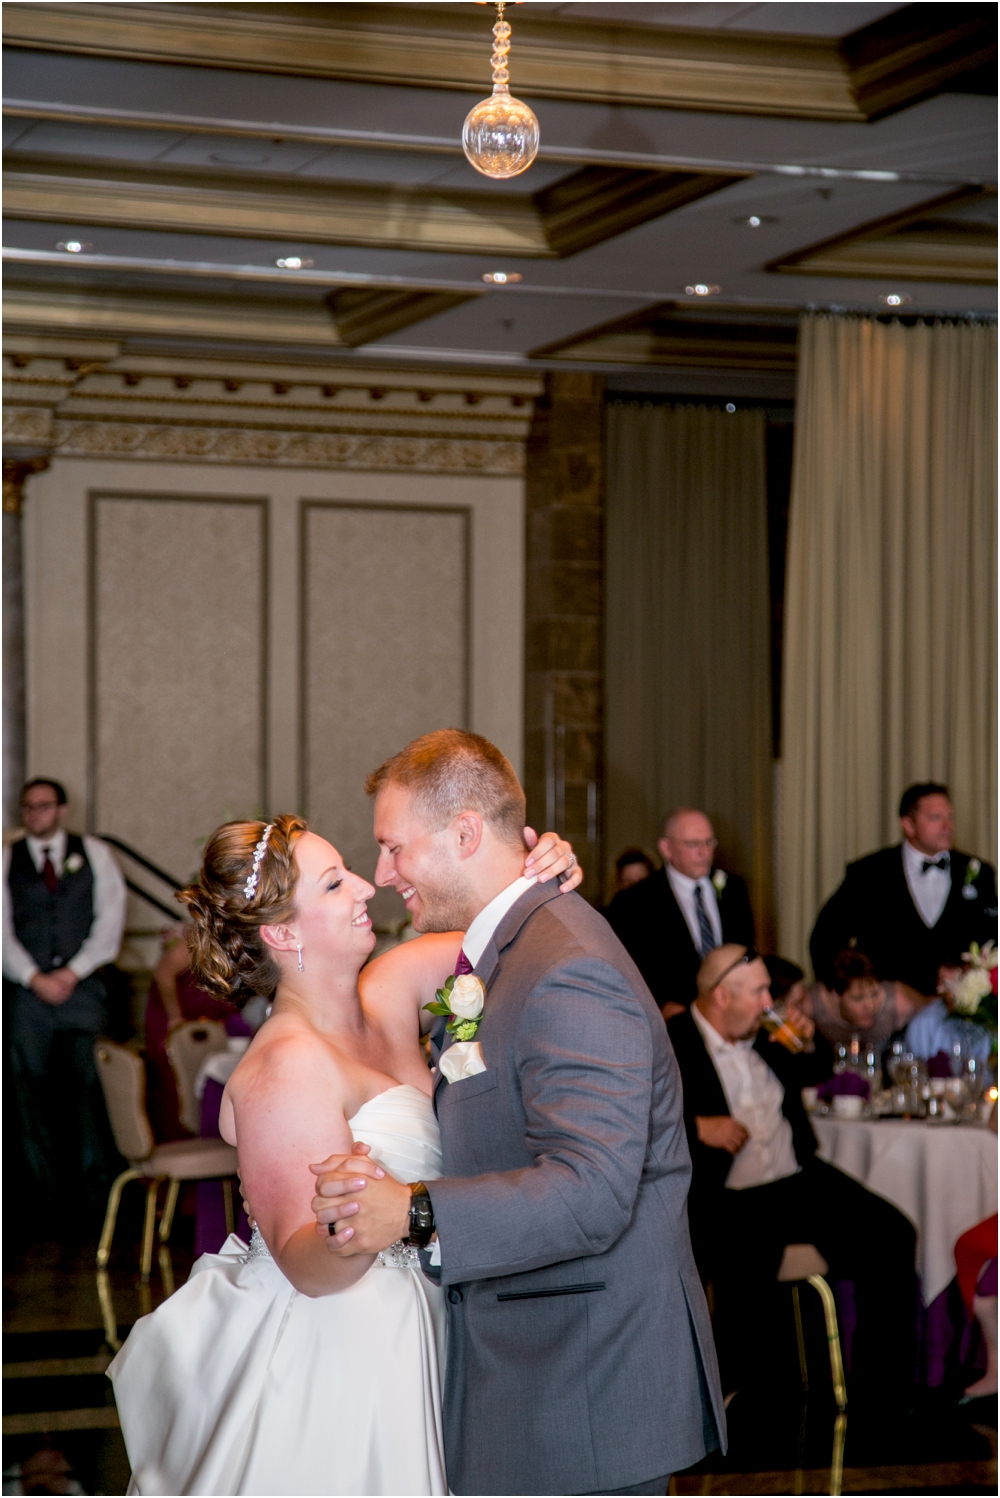 Martins-Valley-Mansion-Ballroom-Maryland-Weddings-Living-Radiant-Photography-Davis_0072.jpg